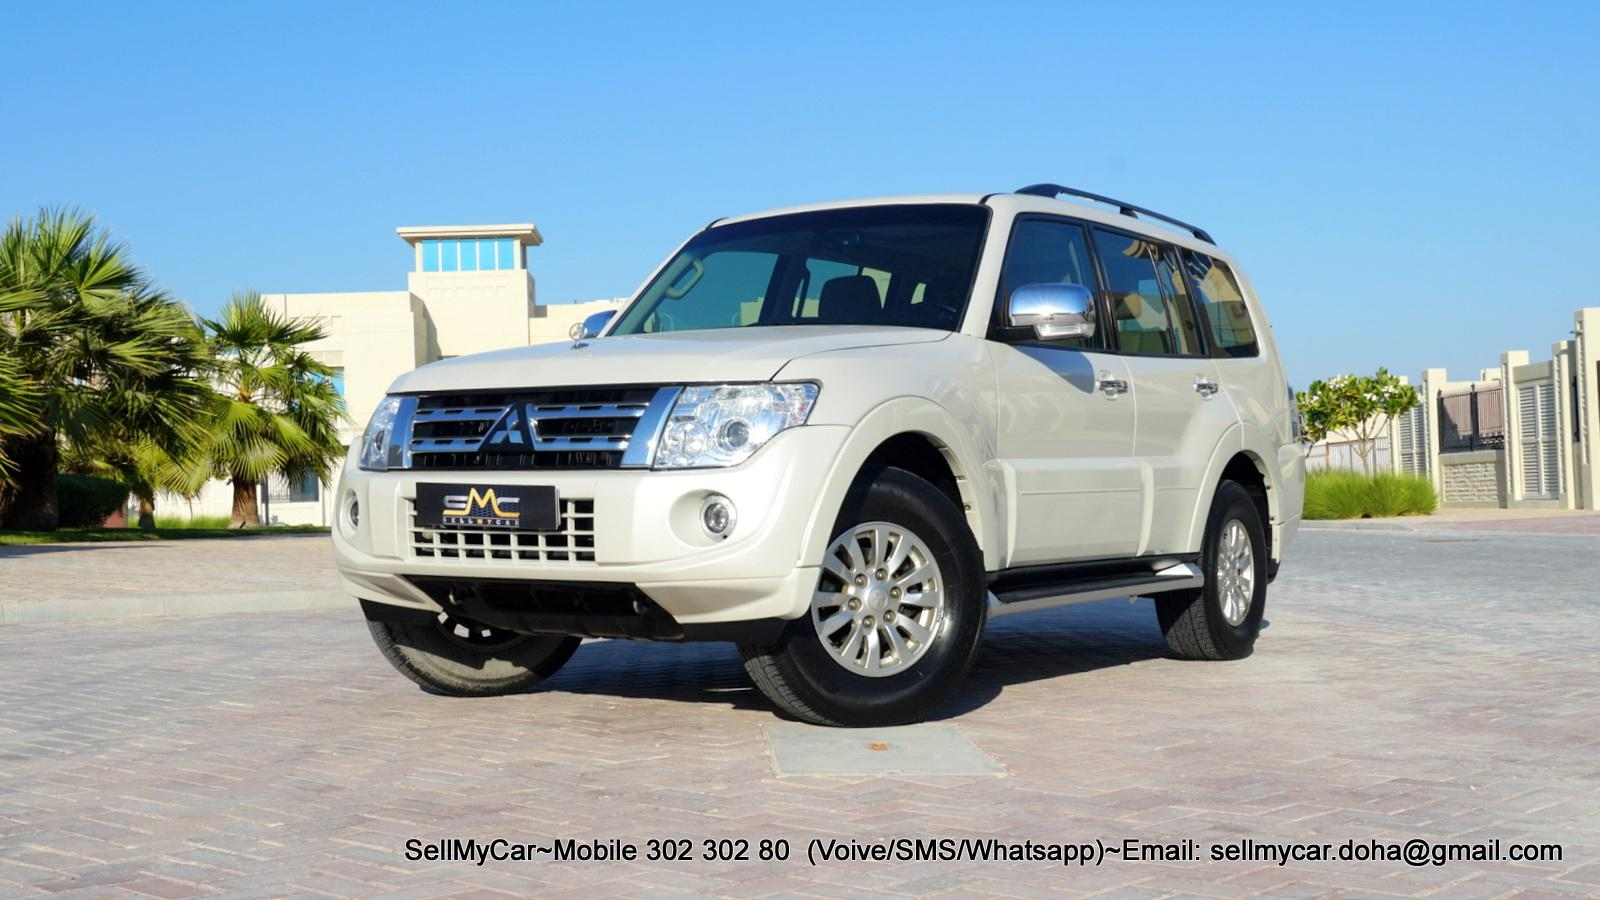 2014 Mitsubishi Pajero 3.5 Full Option